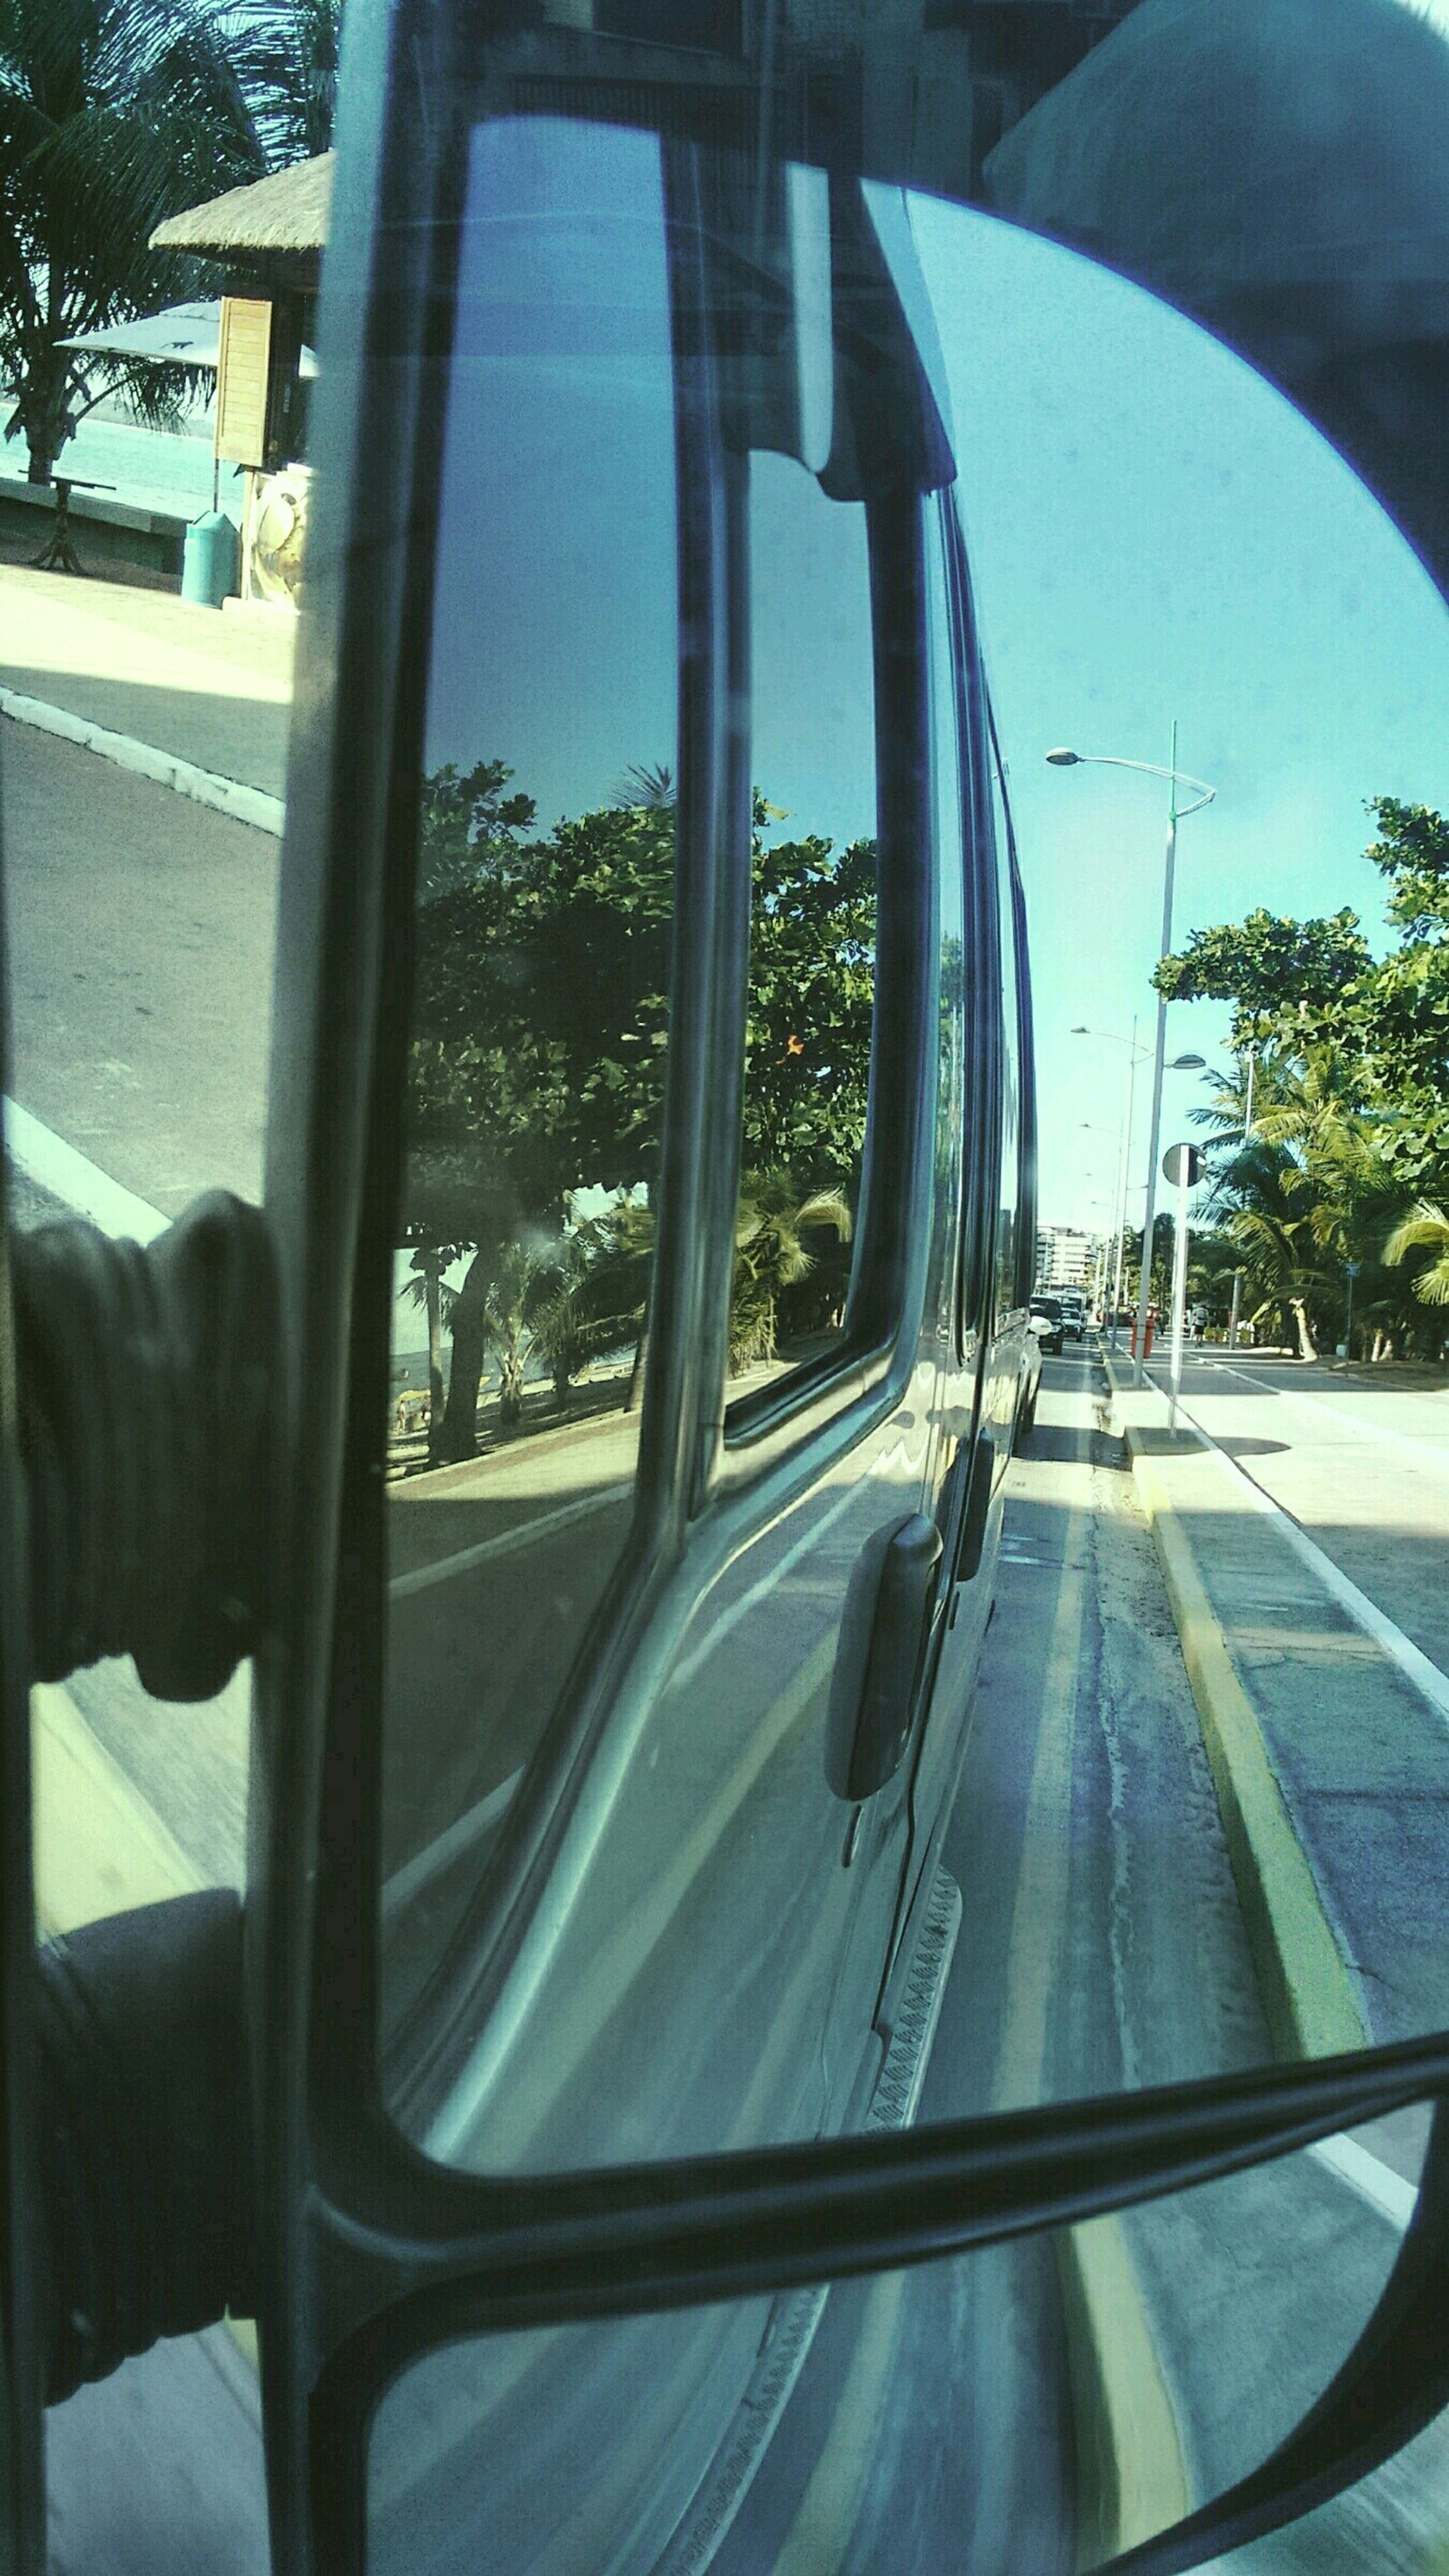 transportation, mode of transport, vehicle interior, glass - material, land vehicle, car, transparent, window, travel, windshield, tree, car interior, road, blue, part of, day, public transportation, indoors, looking through window, reflection